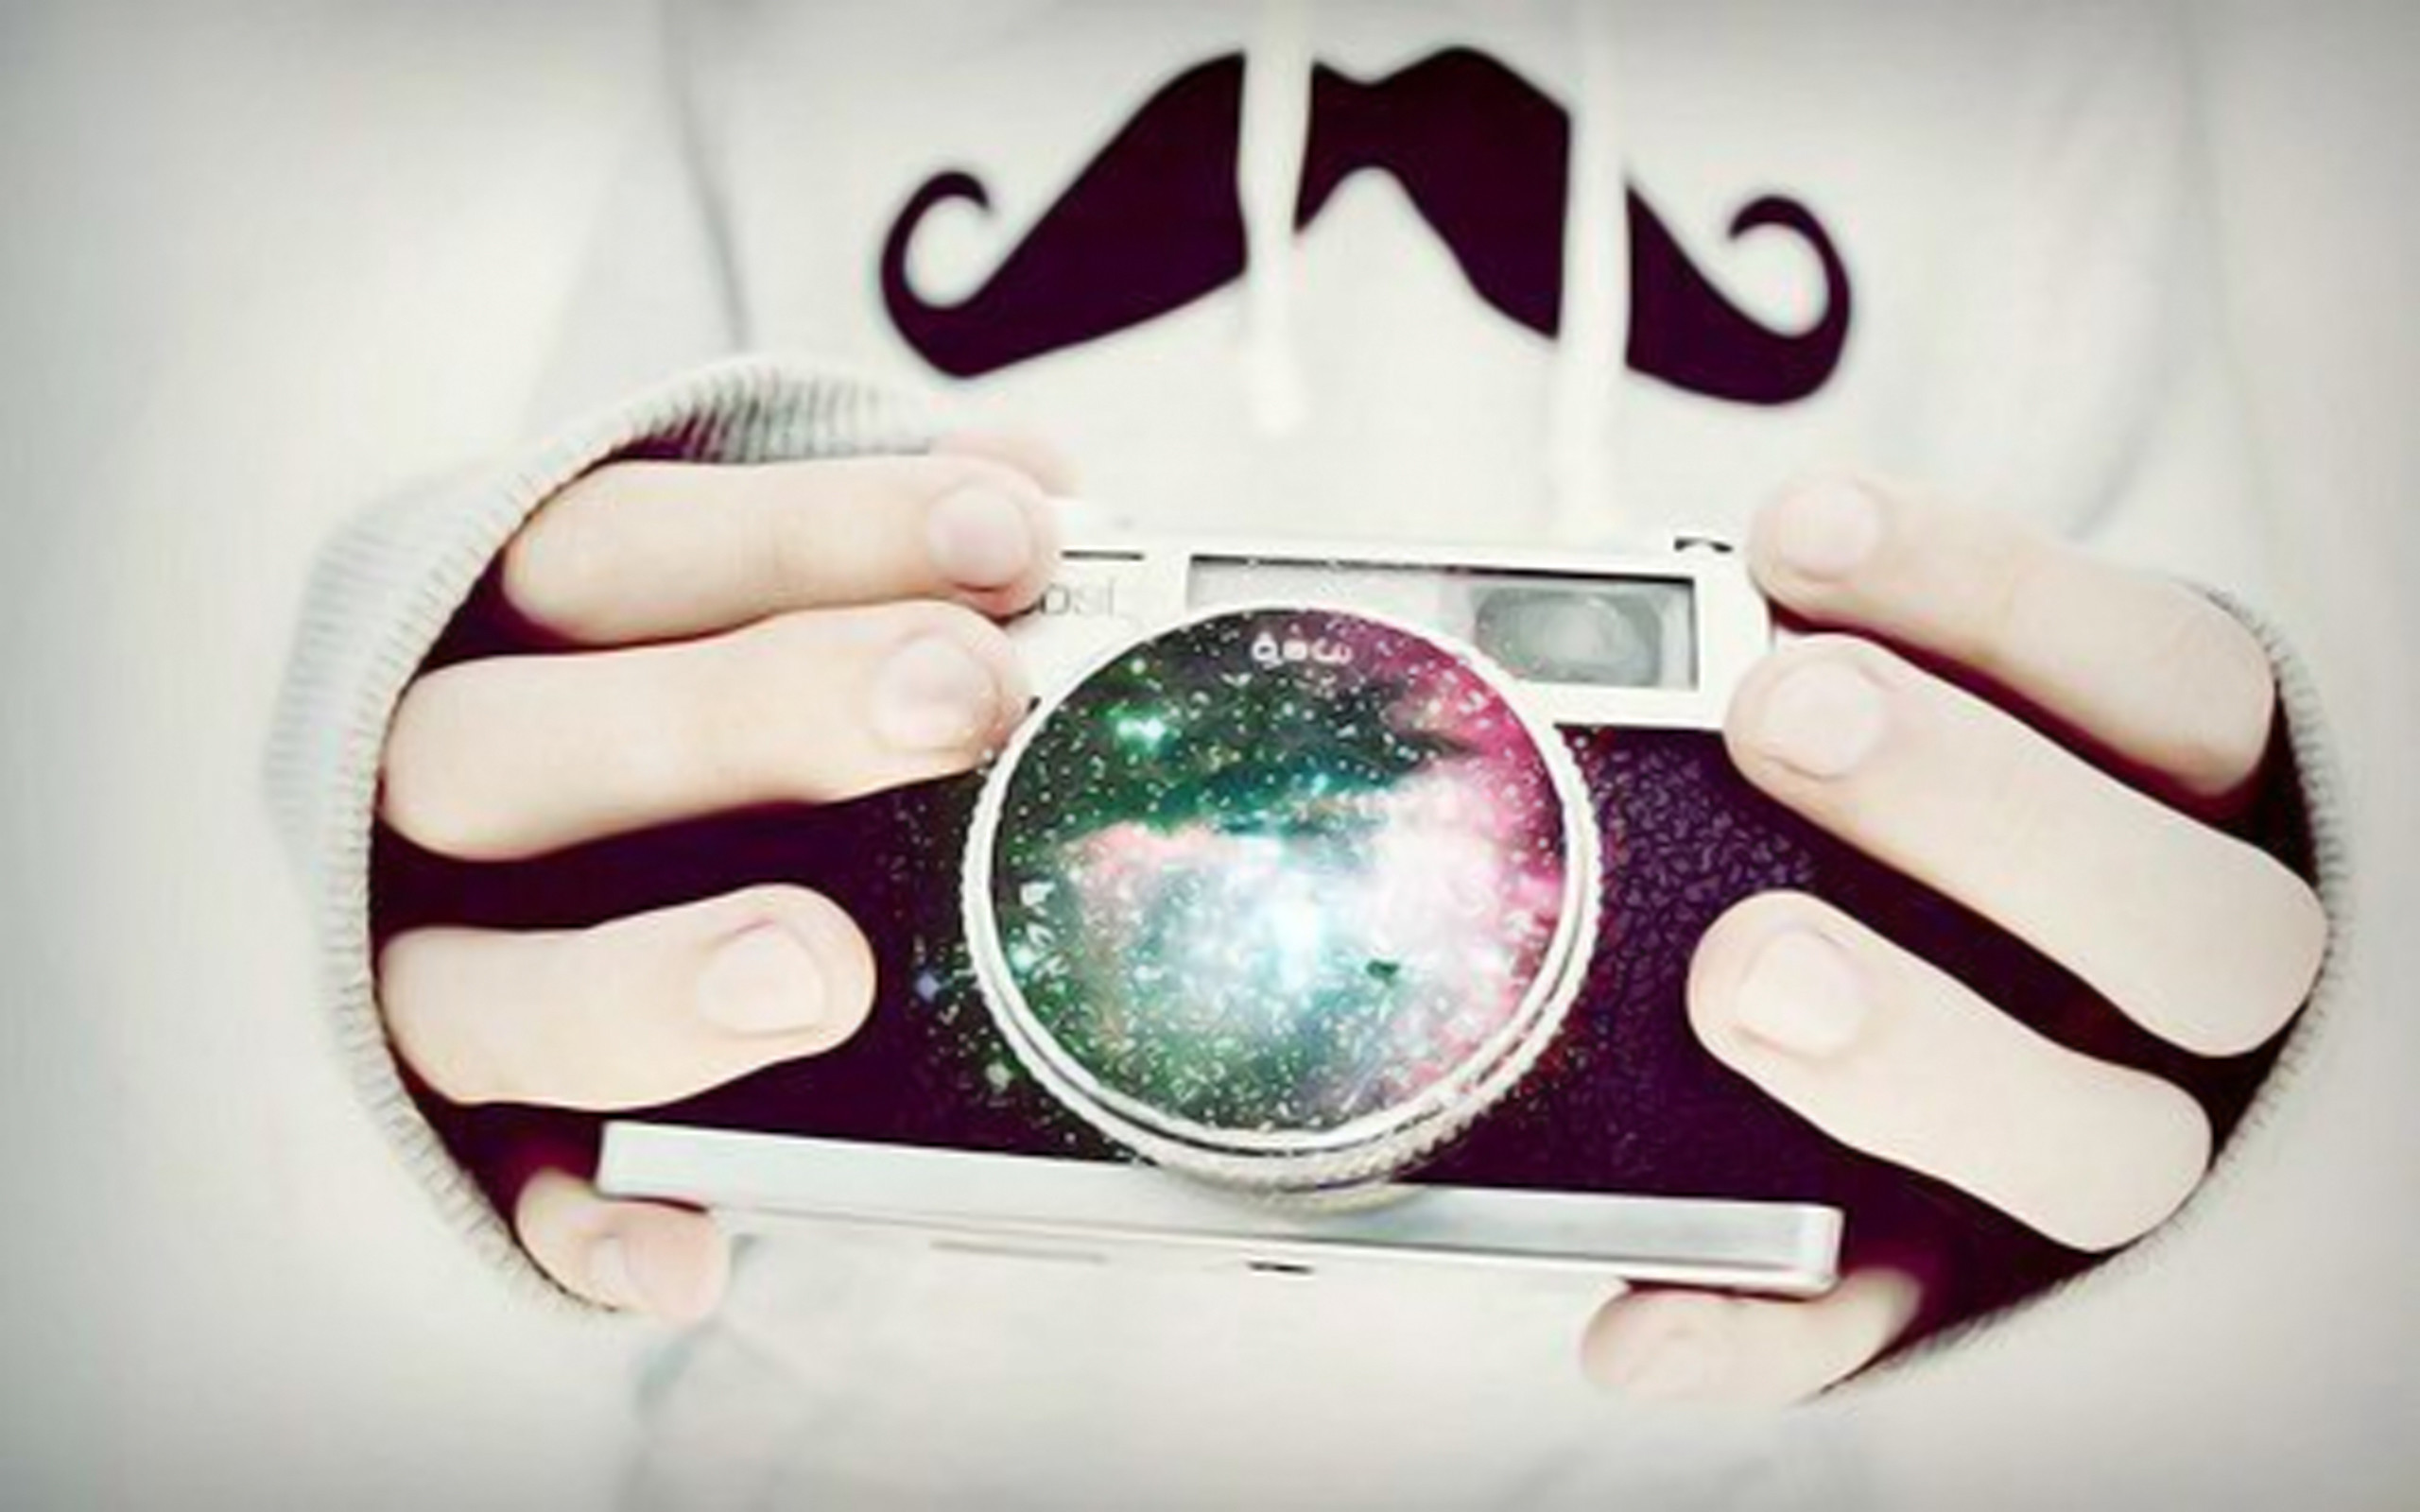 2560x1600 Mustache Wallpaper Tumblr Moustaches and galaxies and